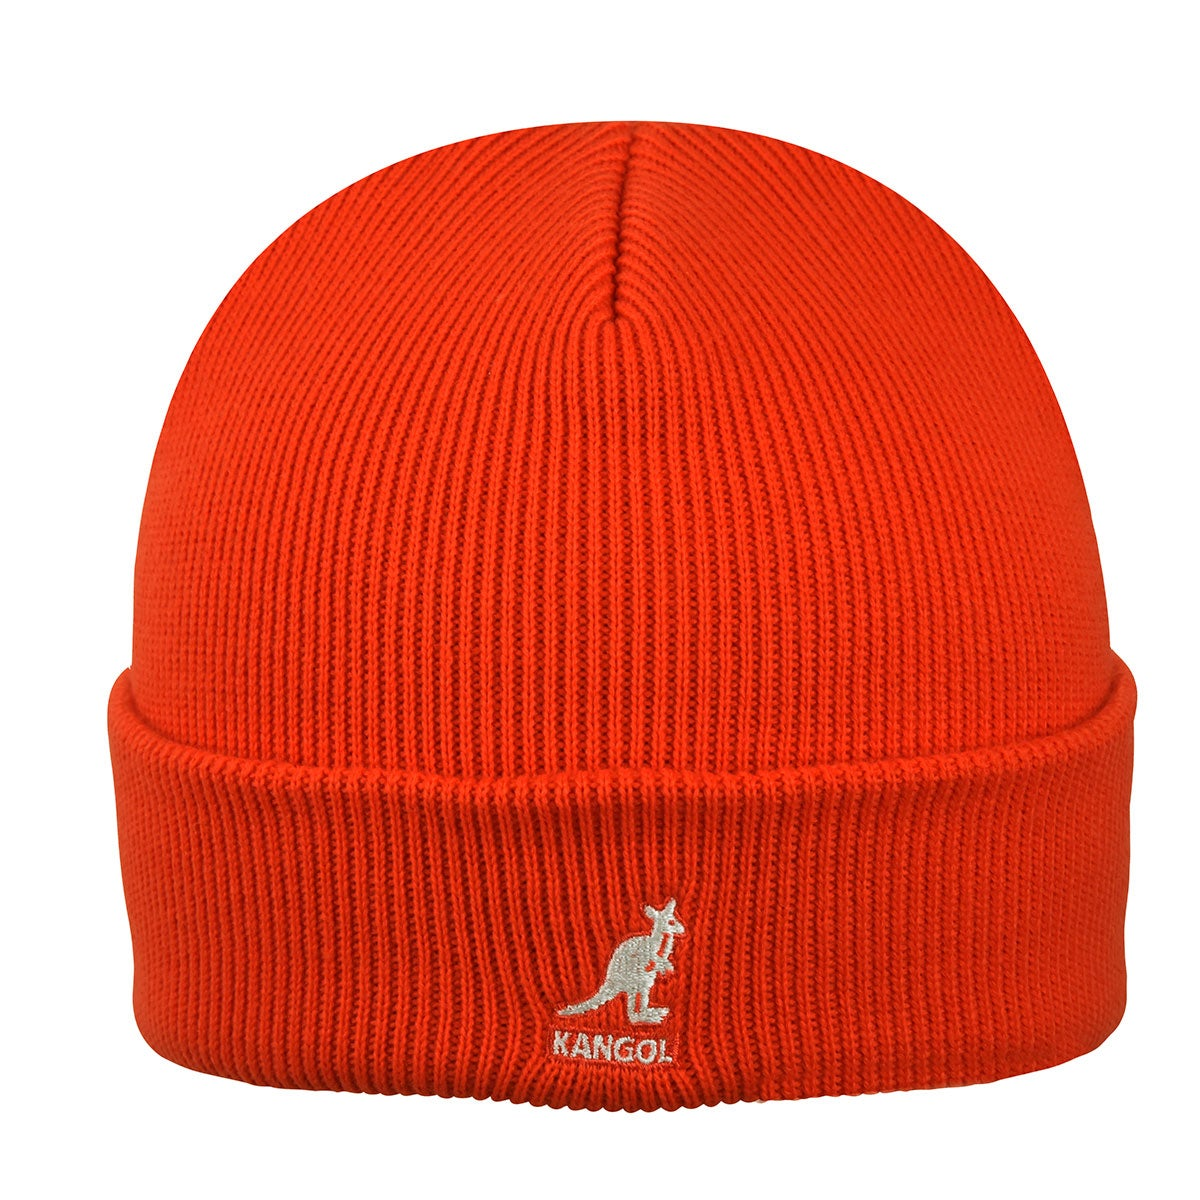 Kangol Acrylic Cuff Pull-On in Safety